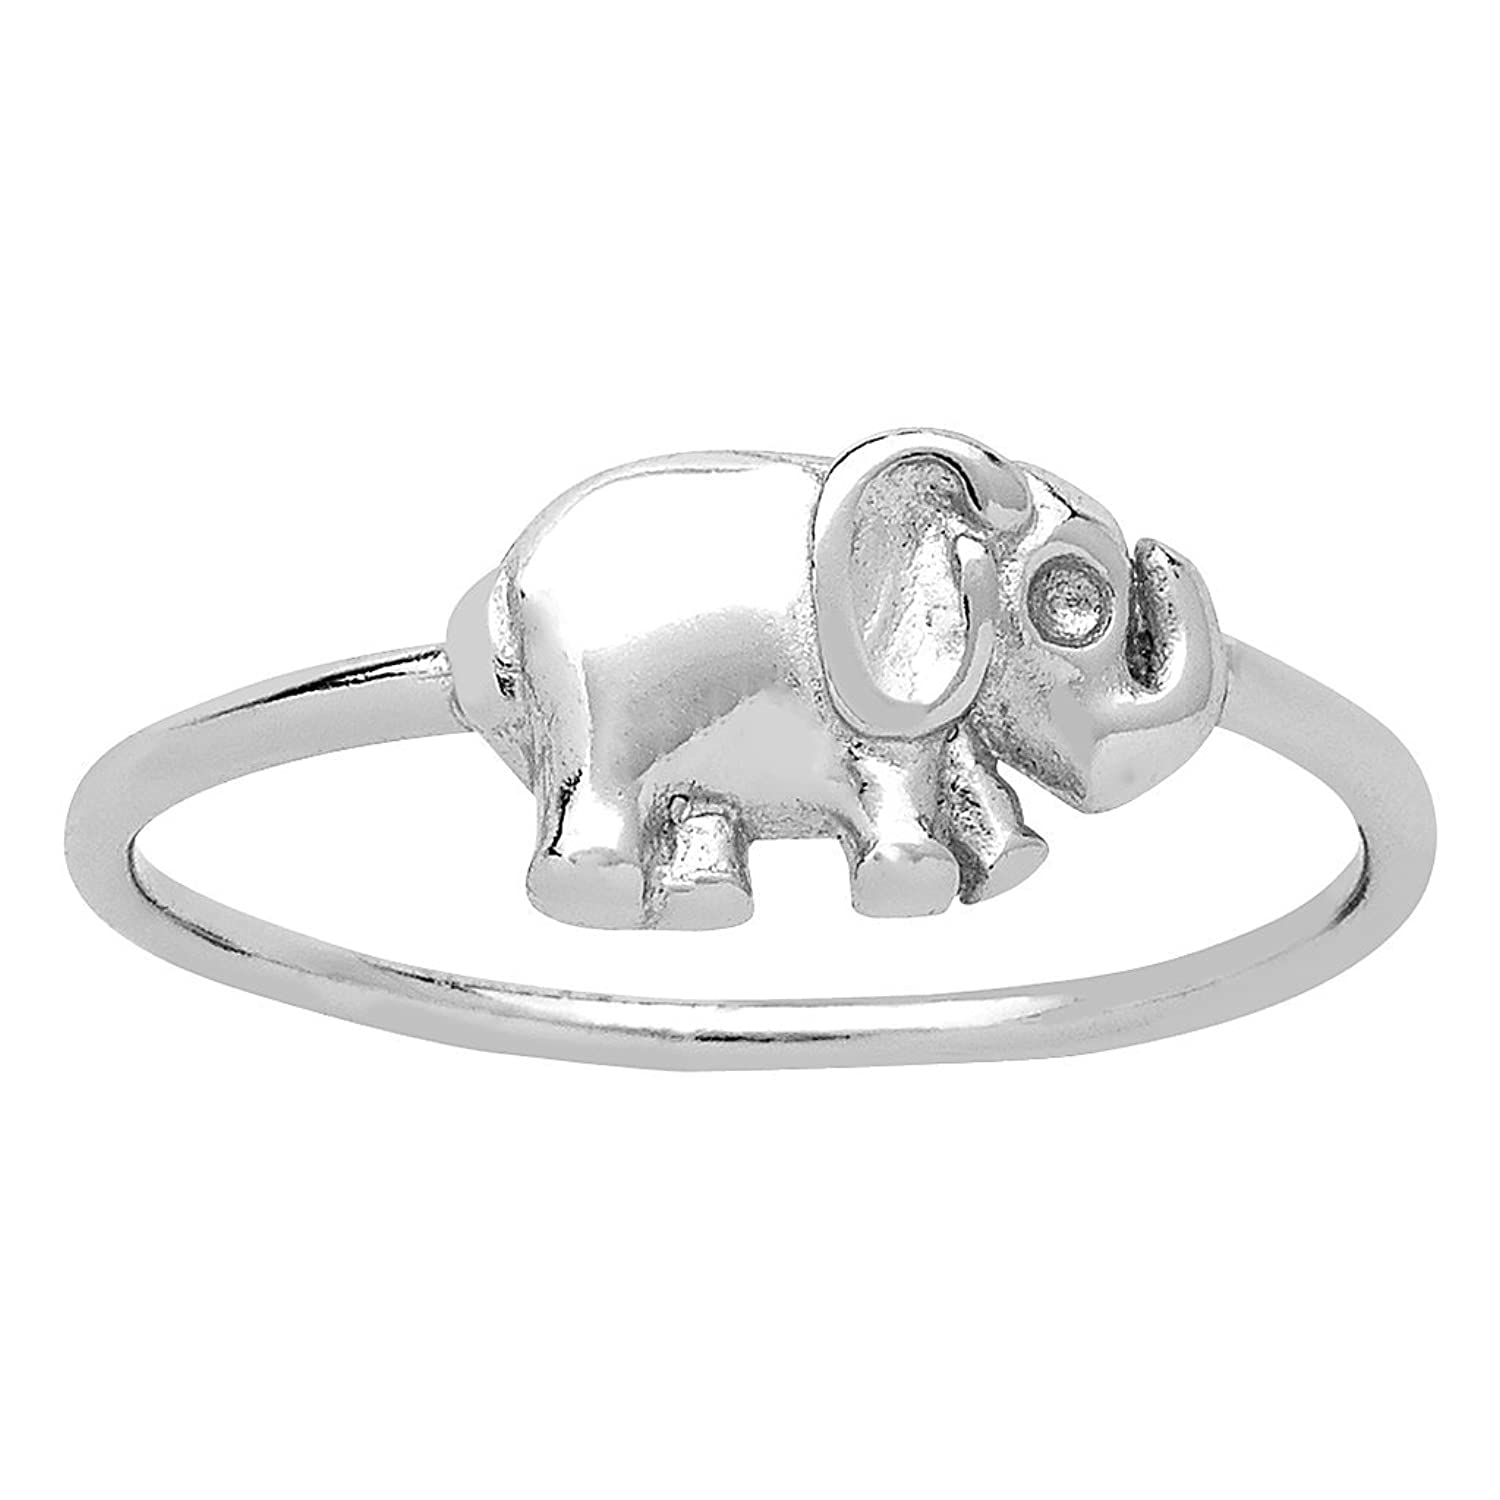 rings ring suetables products christy christyelephantring elephant family engagement